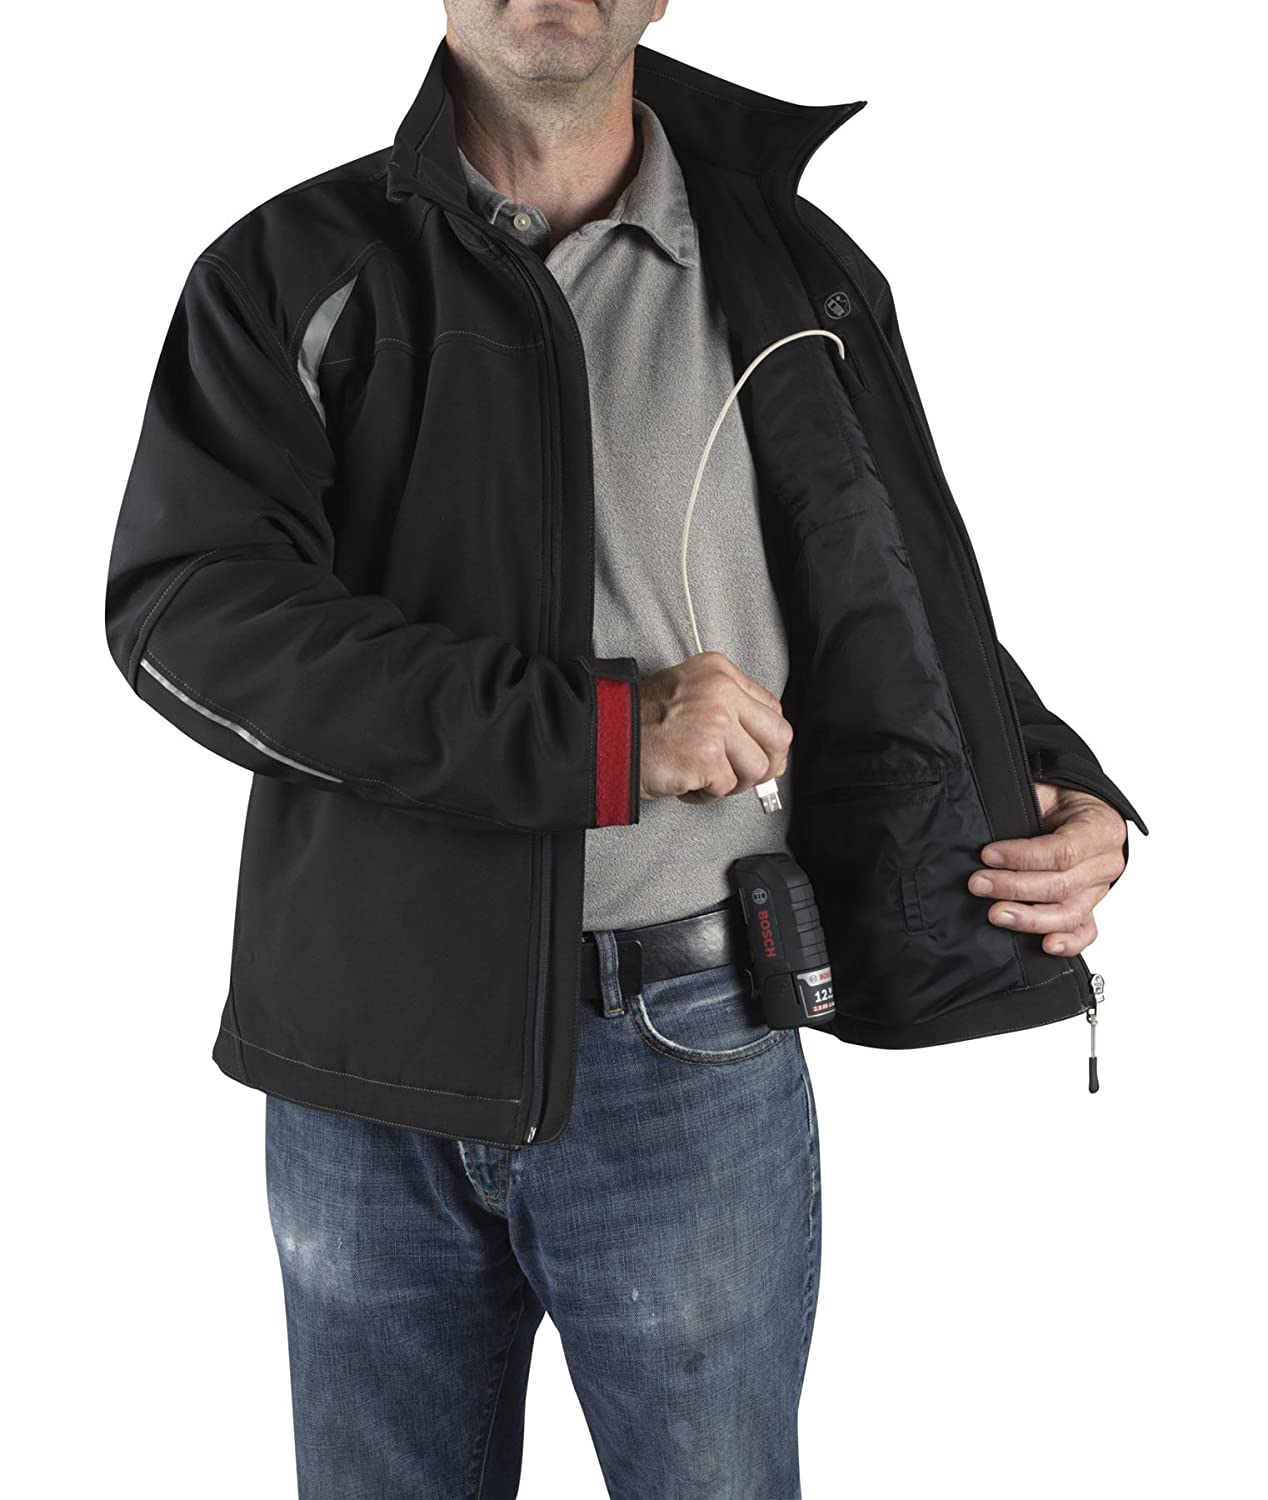 Charger and Holster PSJ120XXL-102 Bosch PSJ120-102 Mens 12-volt Max Lithium-Ion Soft Shell Heated Jacket Kit with 2.0Ah Battery